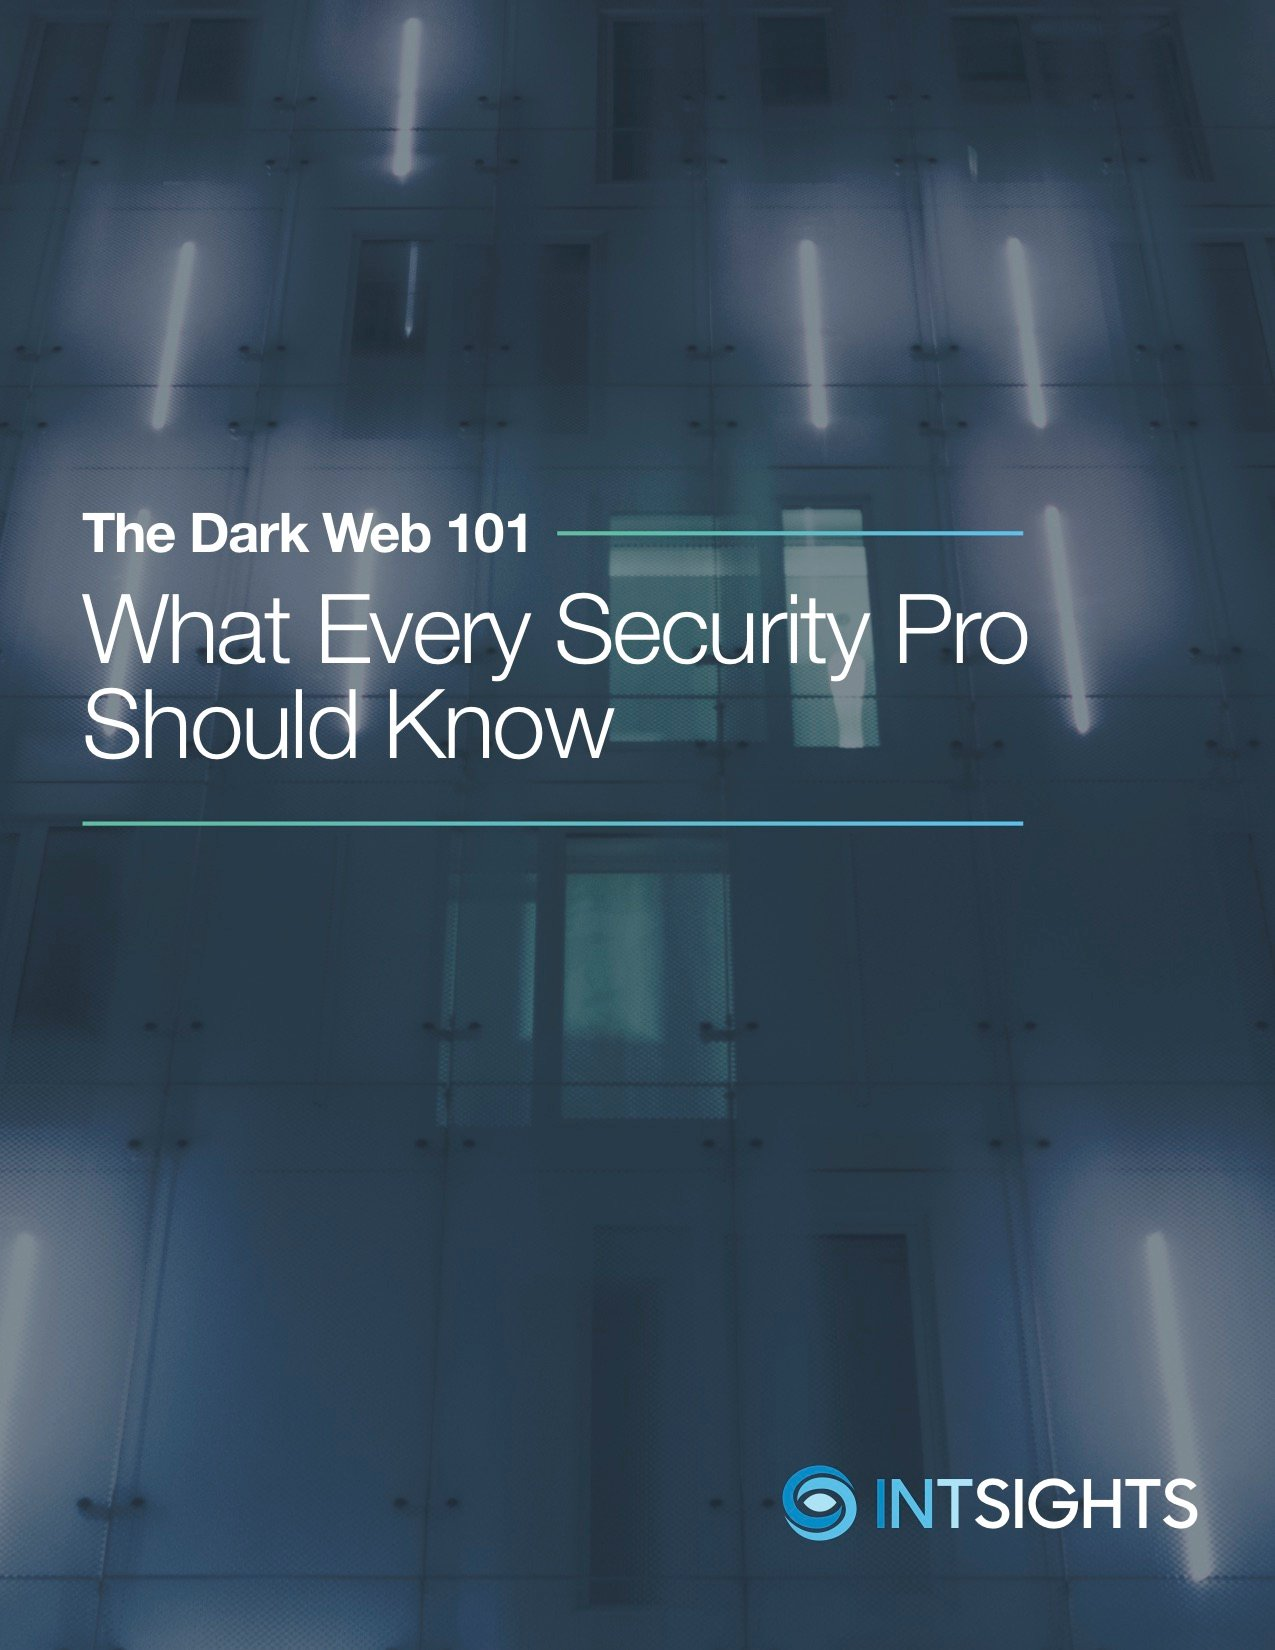 WP-DarkWeb101-Nov 2017-cover3